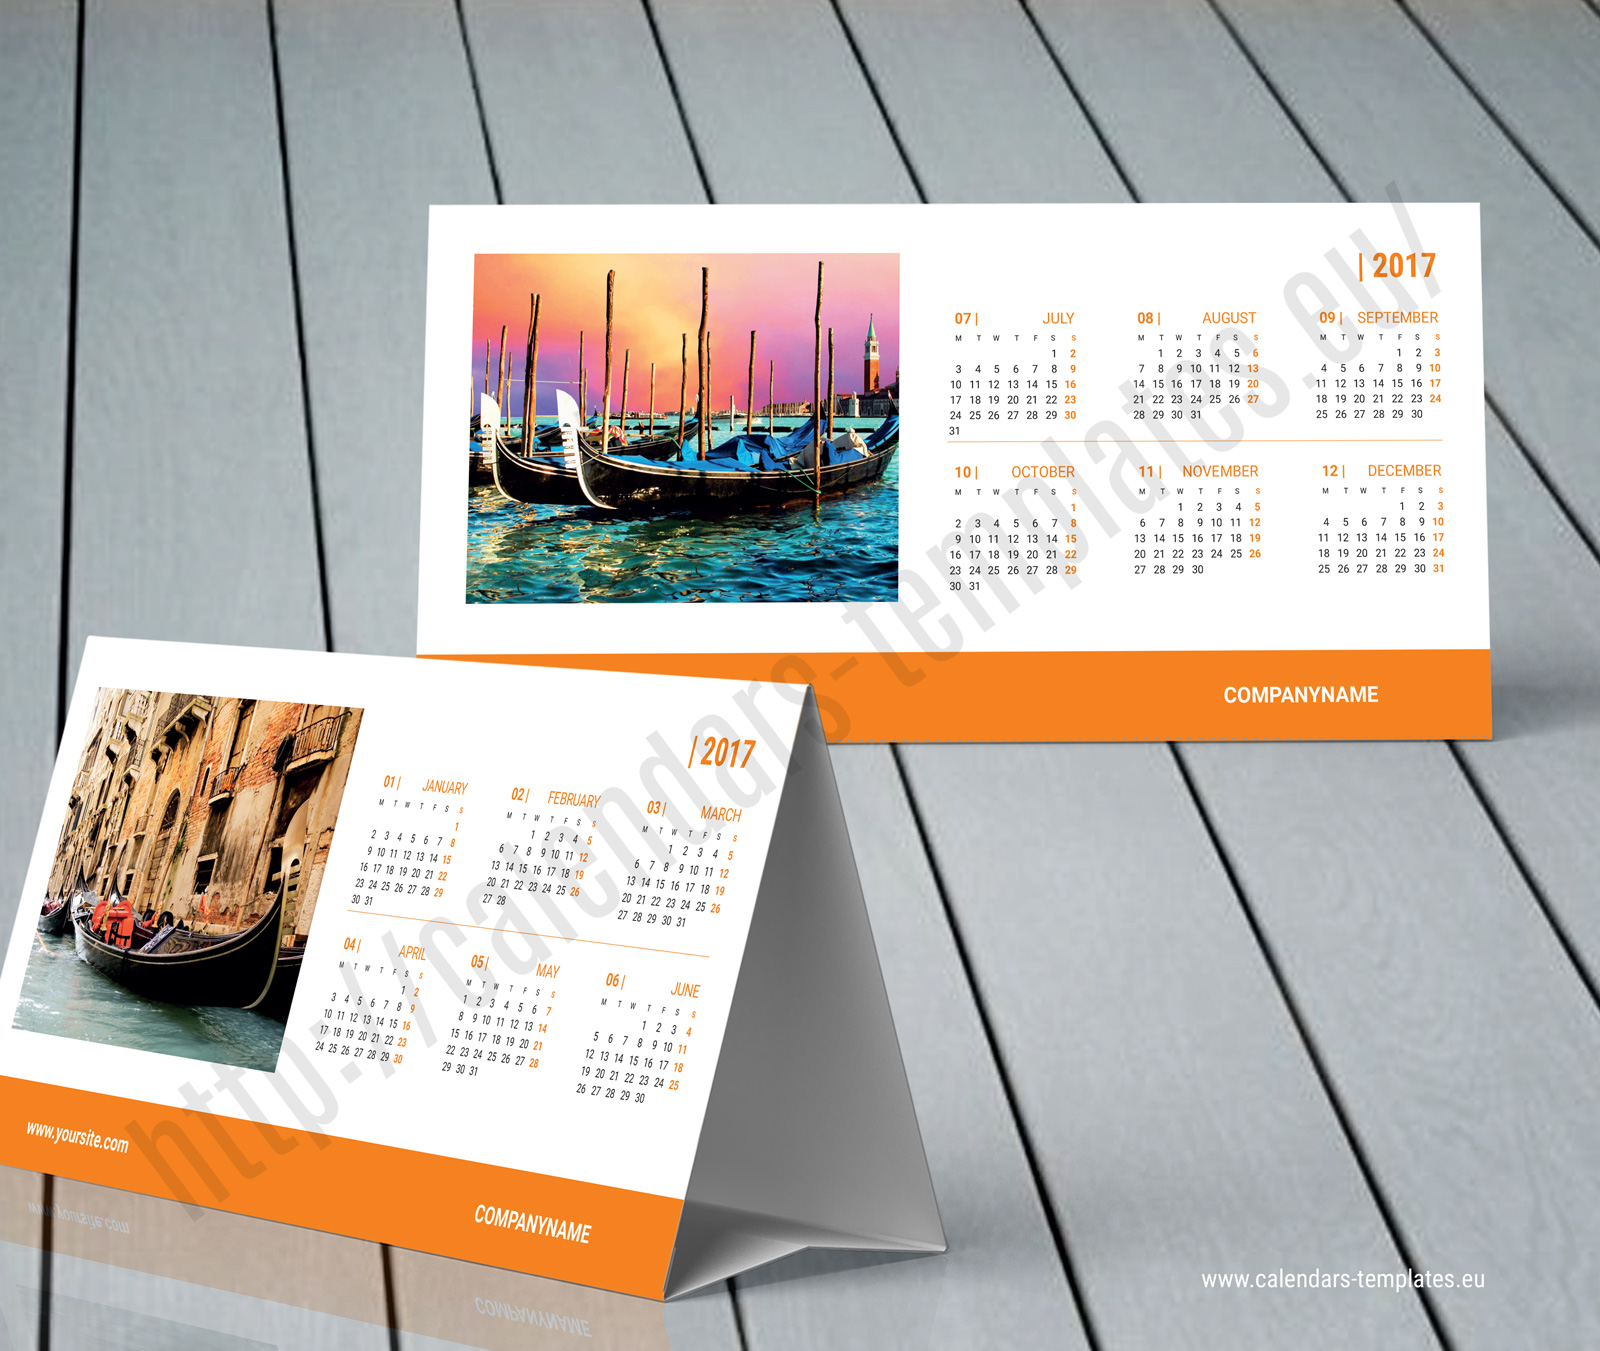 Sample Design Baset On This Desk Calendar Template  Calendar Sample Design